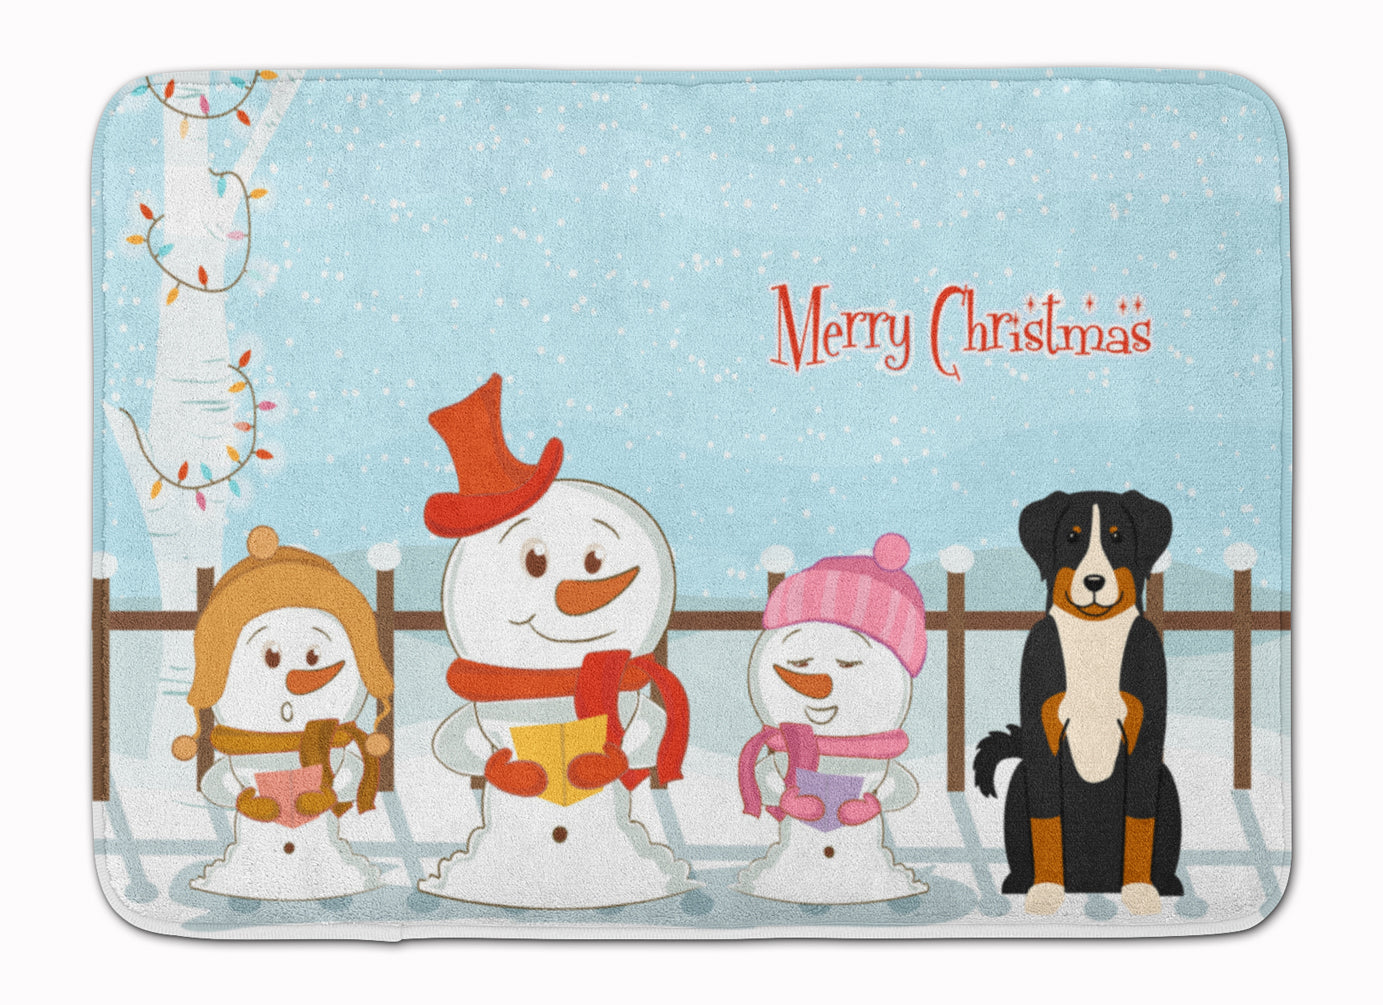 Merry Christmas Carolers Appenzeller Sennenhund Machine Washable Memory Foam Mat BB2374RUG by Caroline's Treasures